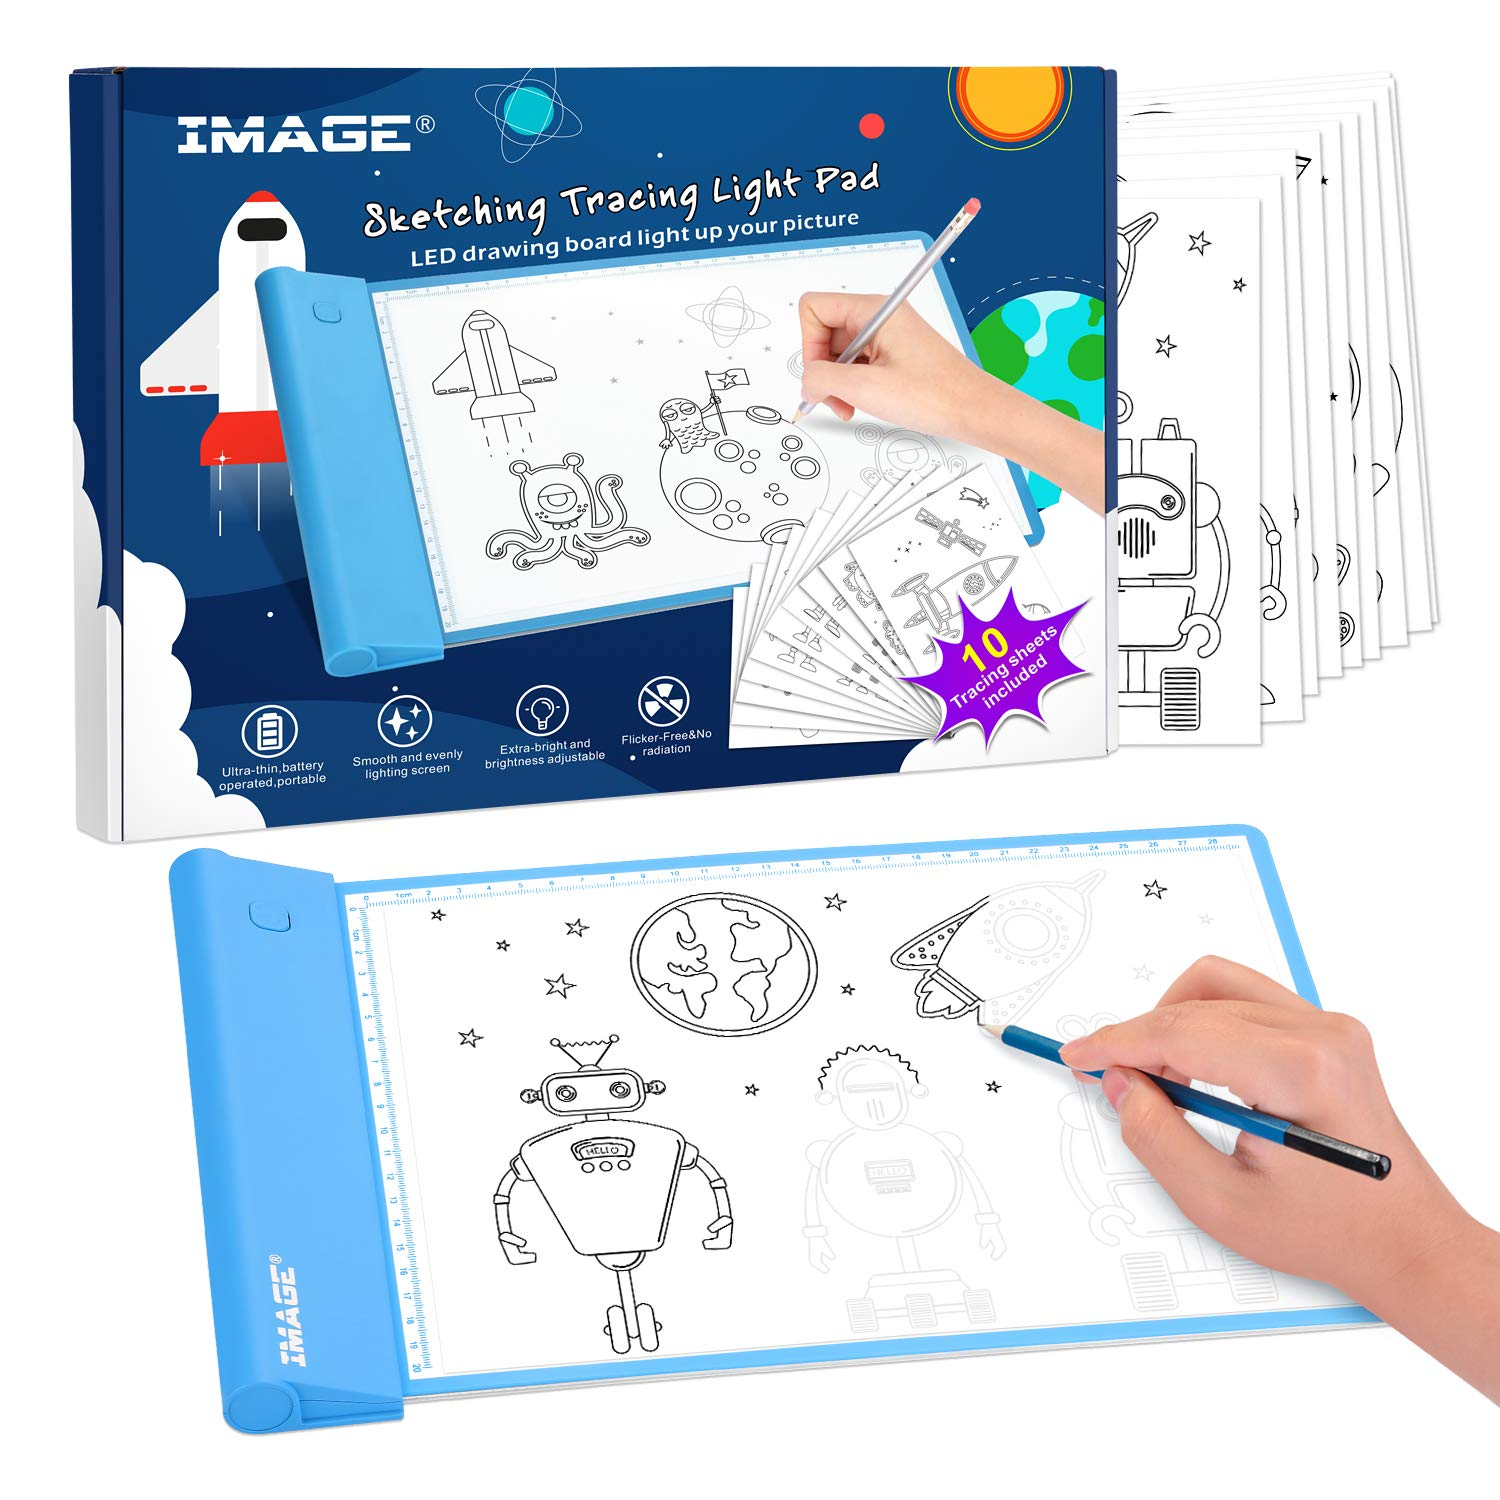 Image Light Up Tracing Pad Blue Drawing Tablet Coloring Board For Kids Children Toy Gift For Boys Girls Ages 6 7 8 9 10 Includes 10 Traceable Sheets